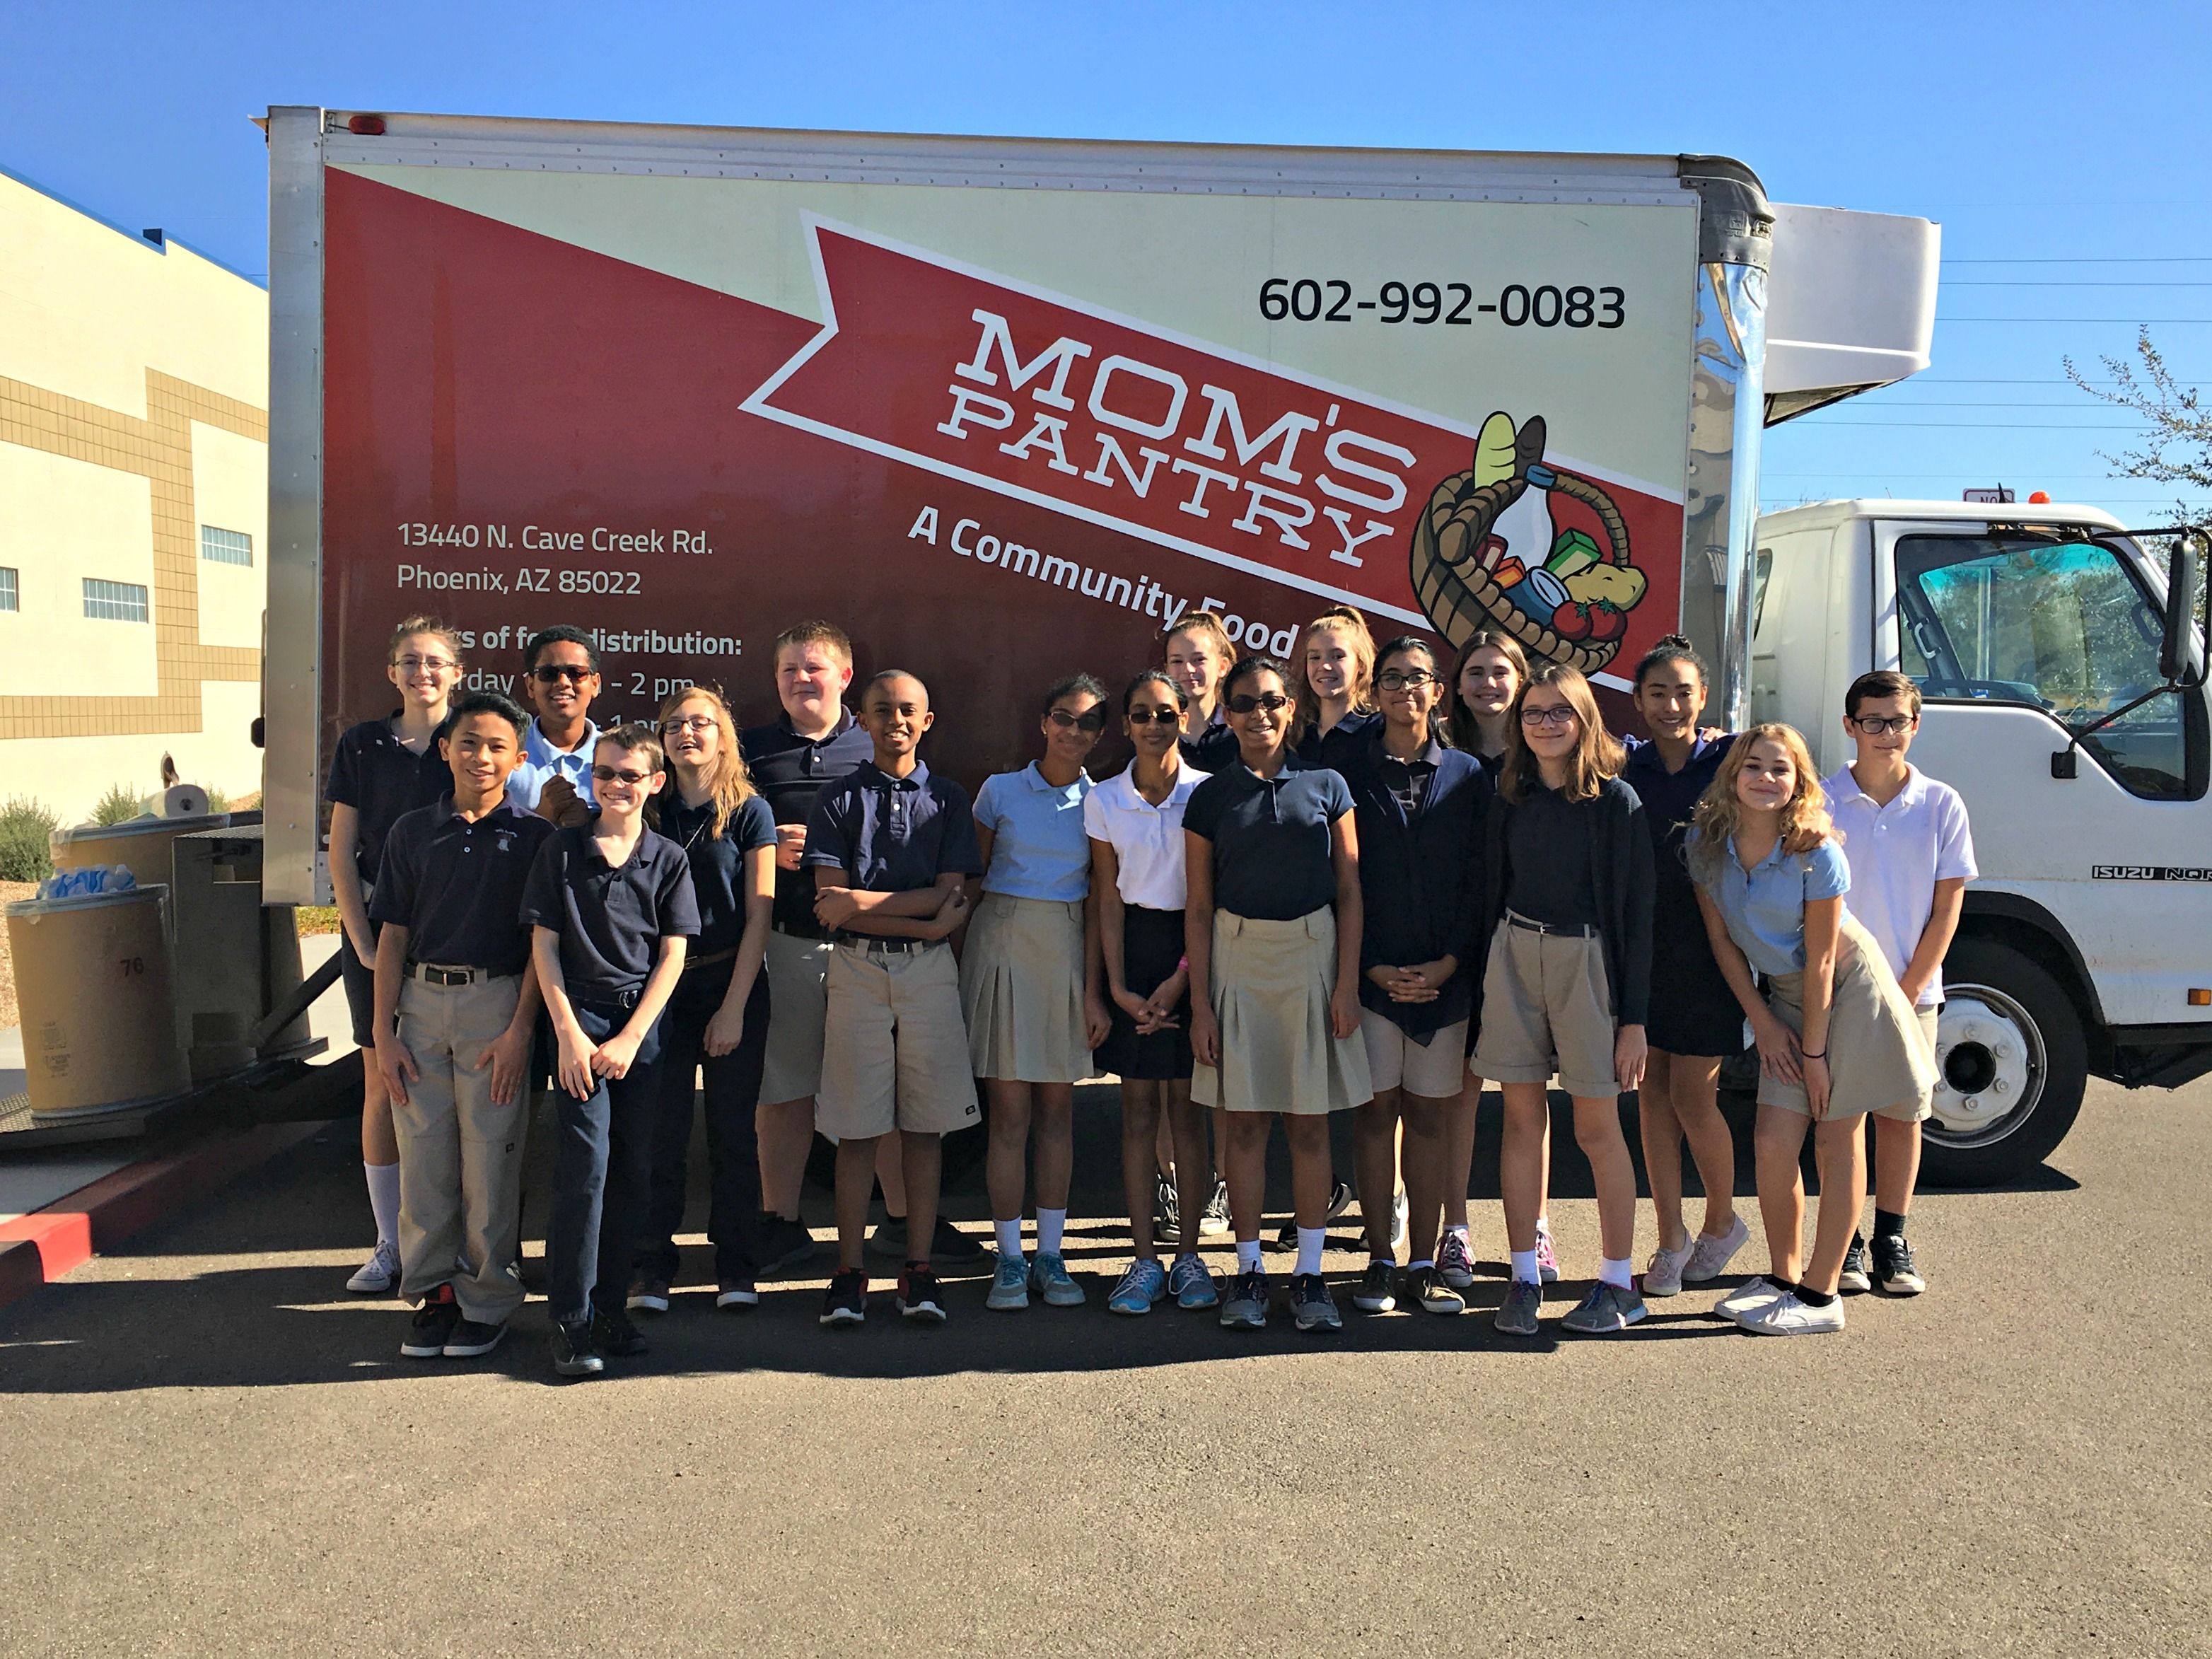 7th grade students in uniforms in front of food pantry truck